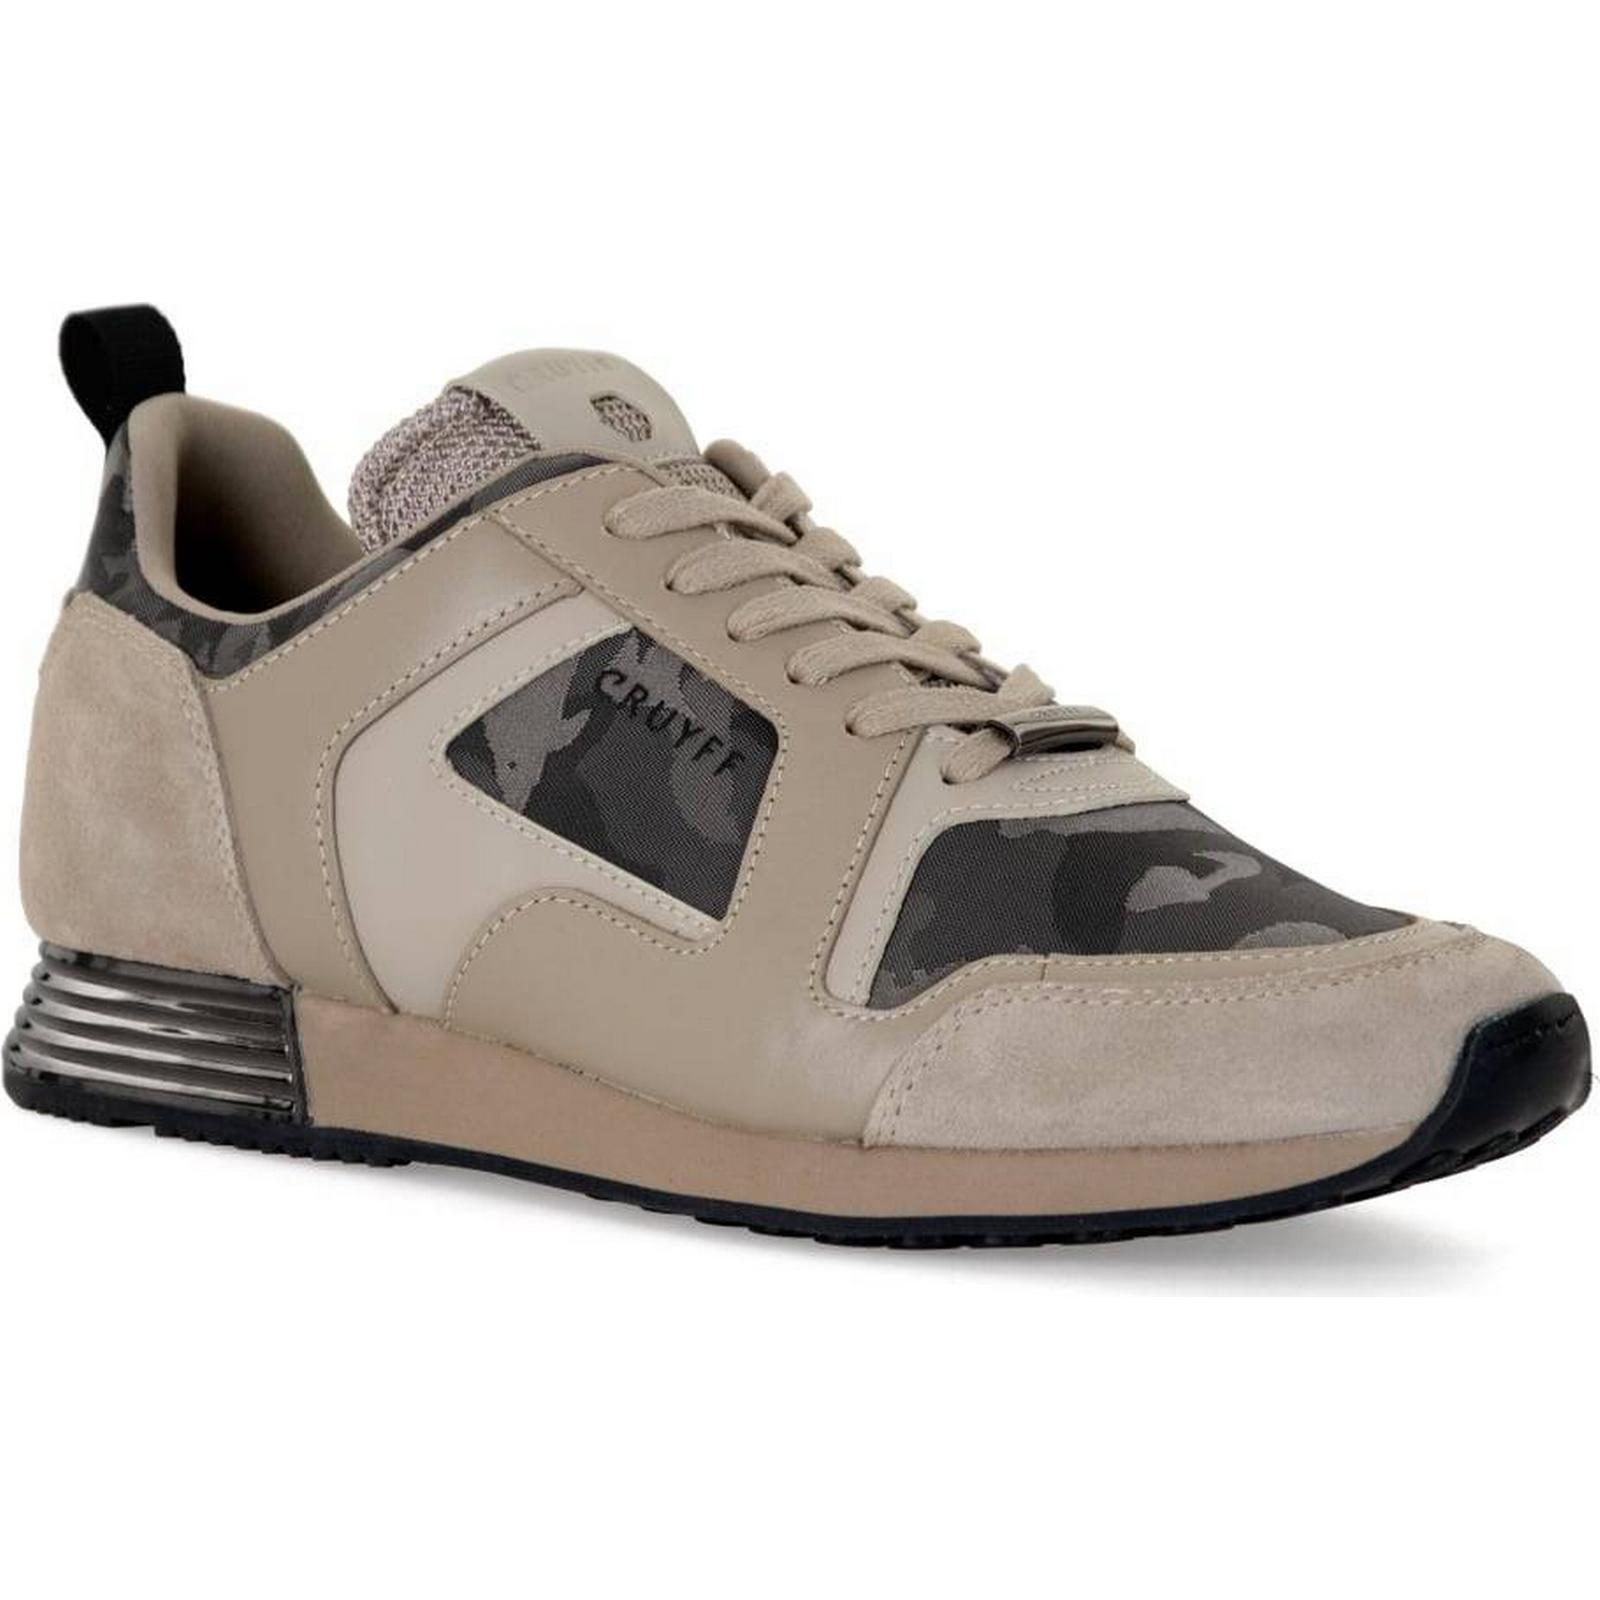 Cruyff Mens 11, Lusso Trainers (Sand) Size: 11, Mens Colour: SAND a0ec22